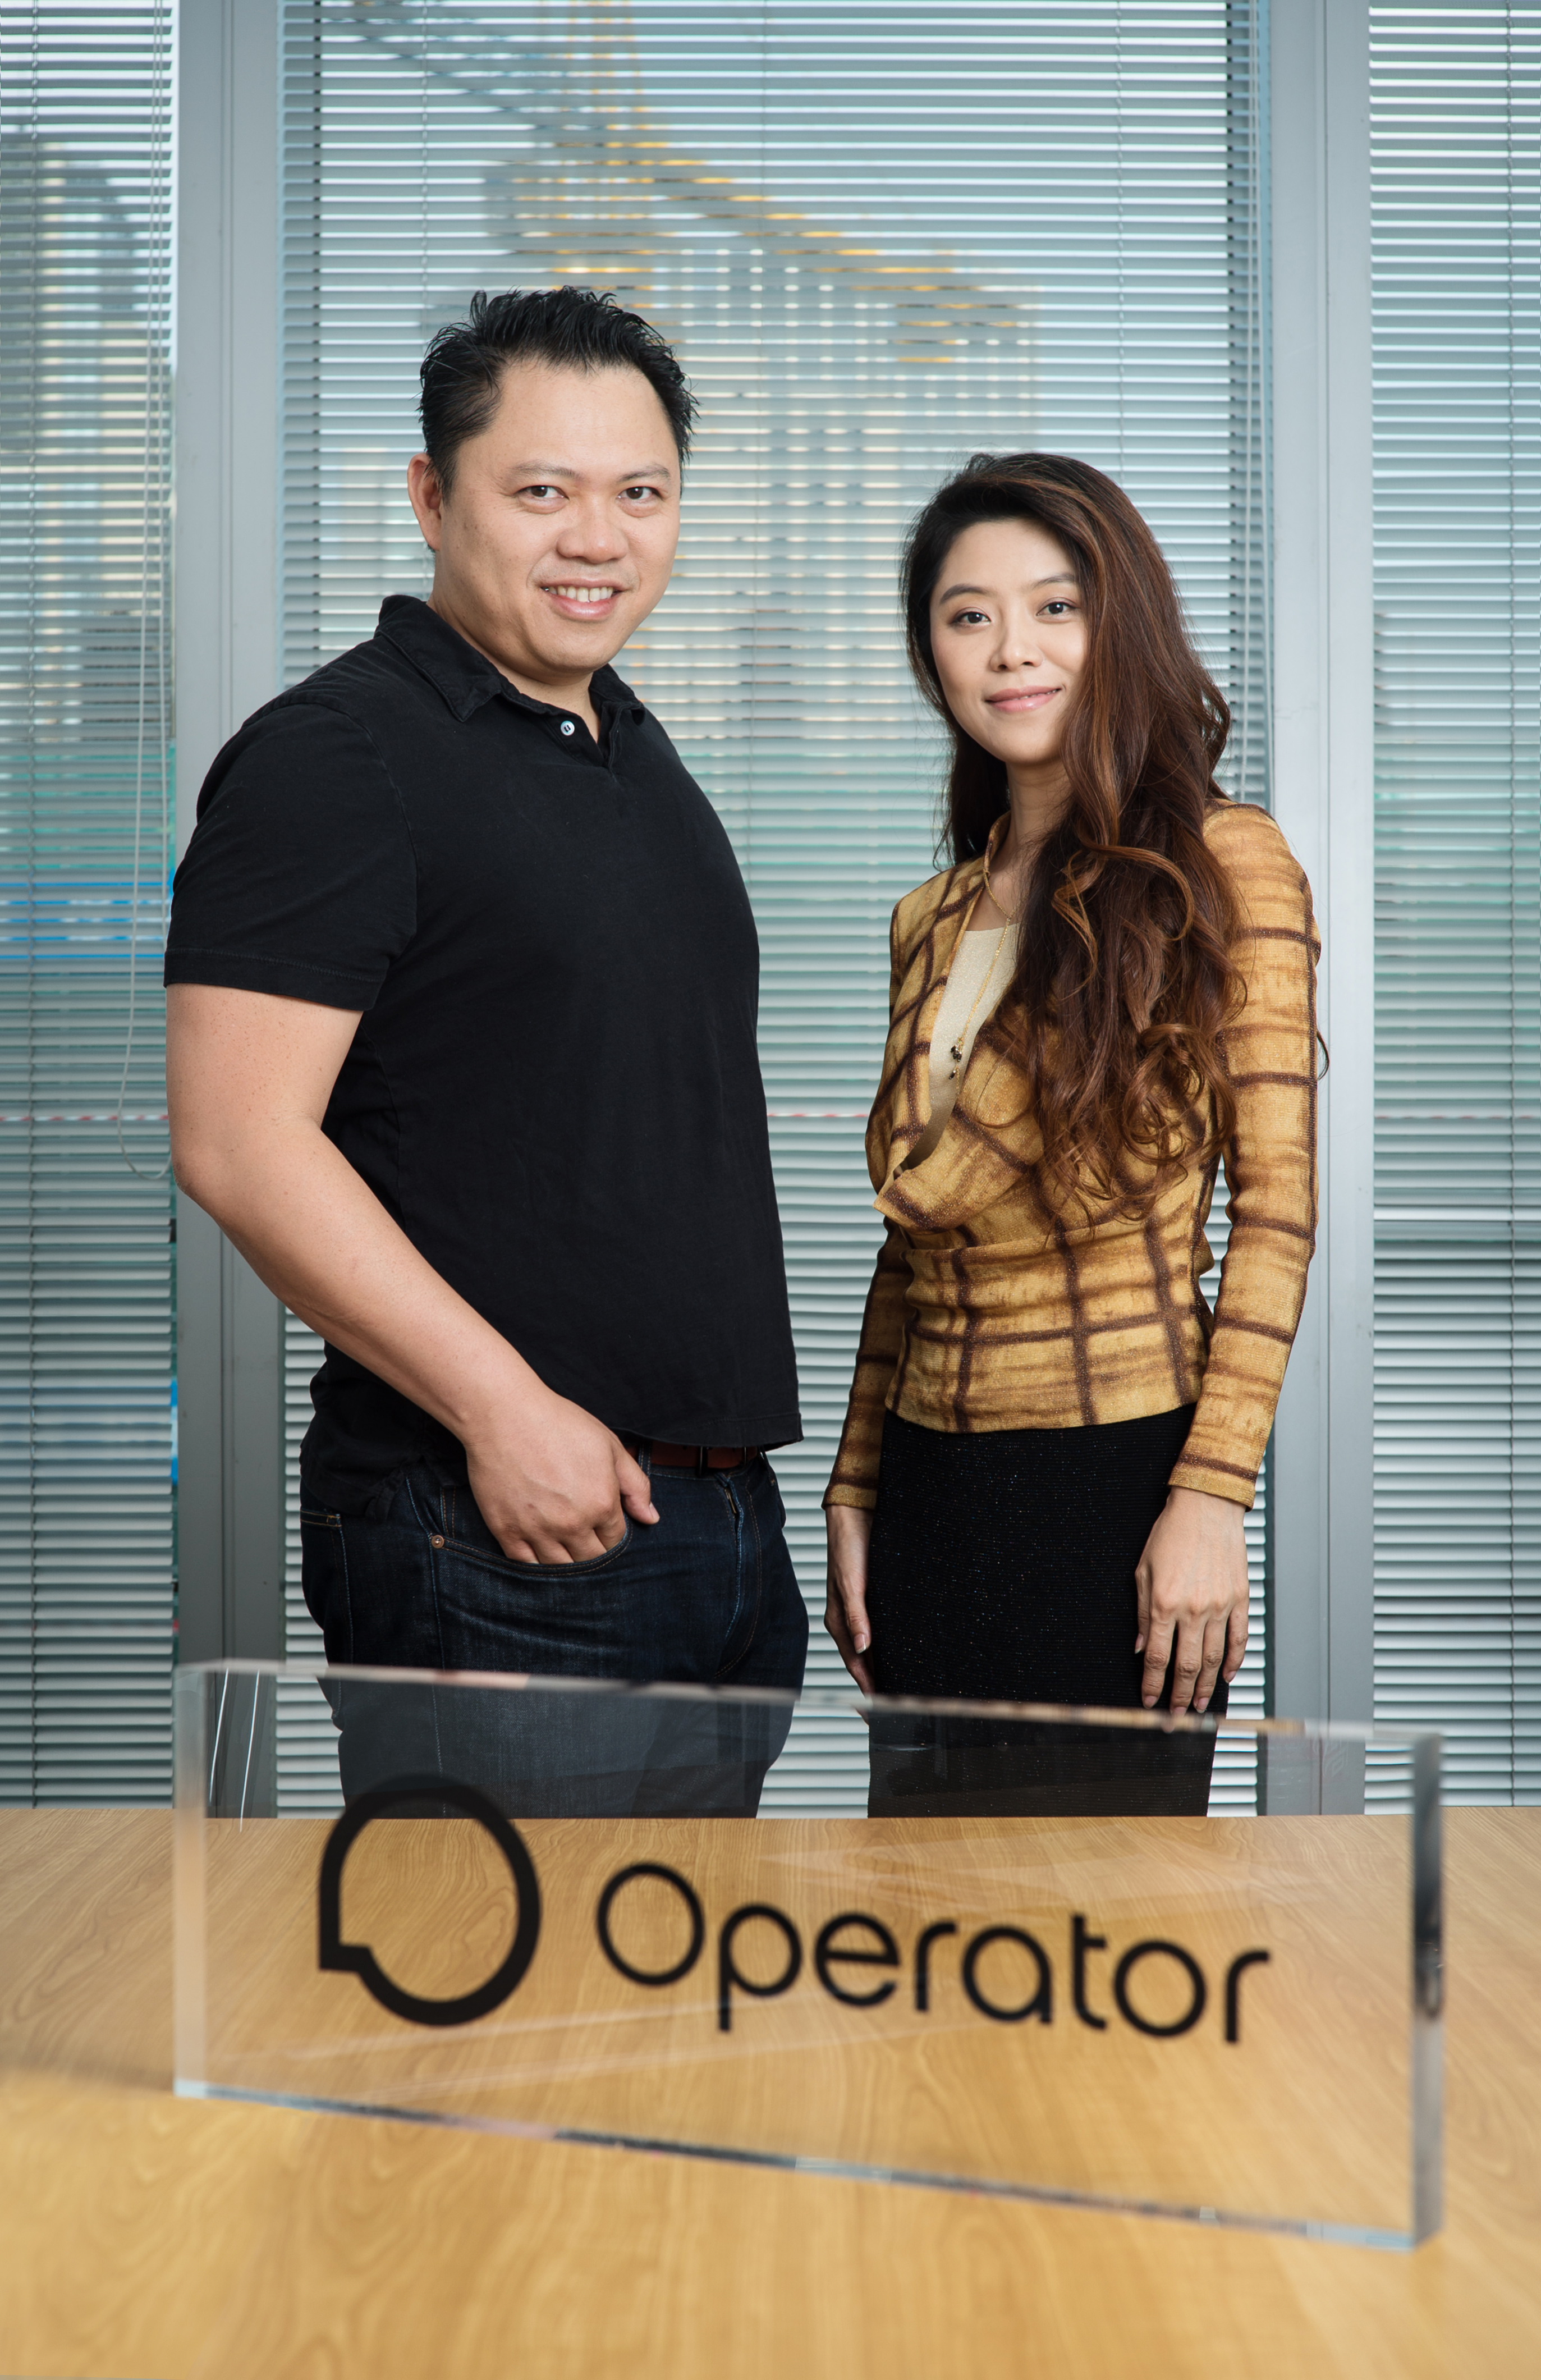 Robin Chan, CEO of Operator, welcomes Yolanda Xue as the new CEO of Operator China. (Photo: Business Wire)